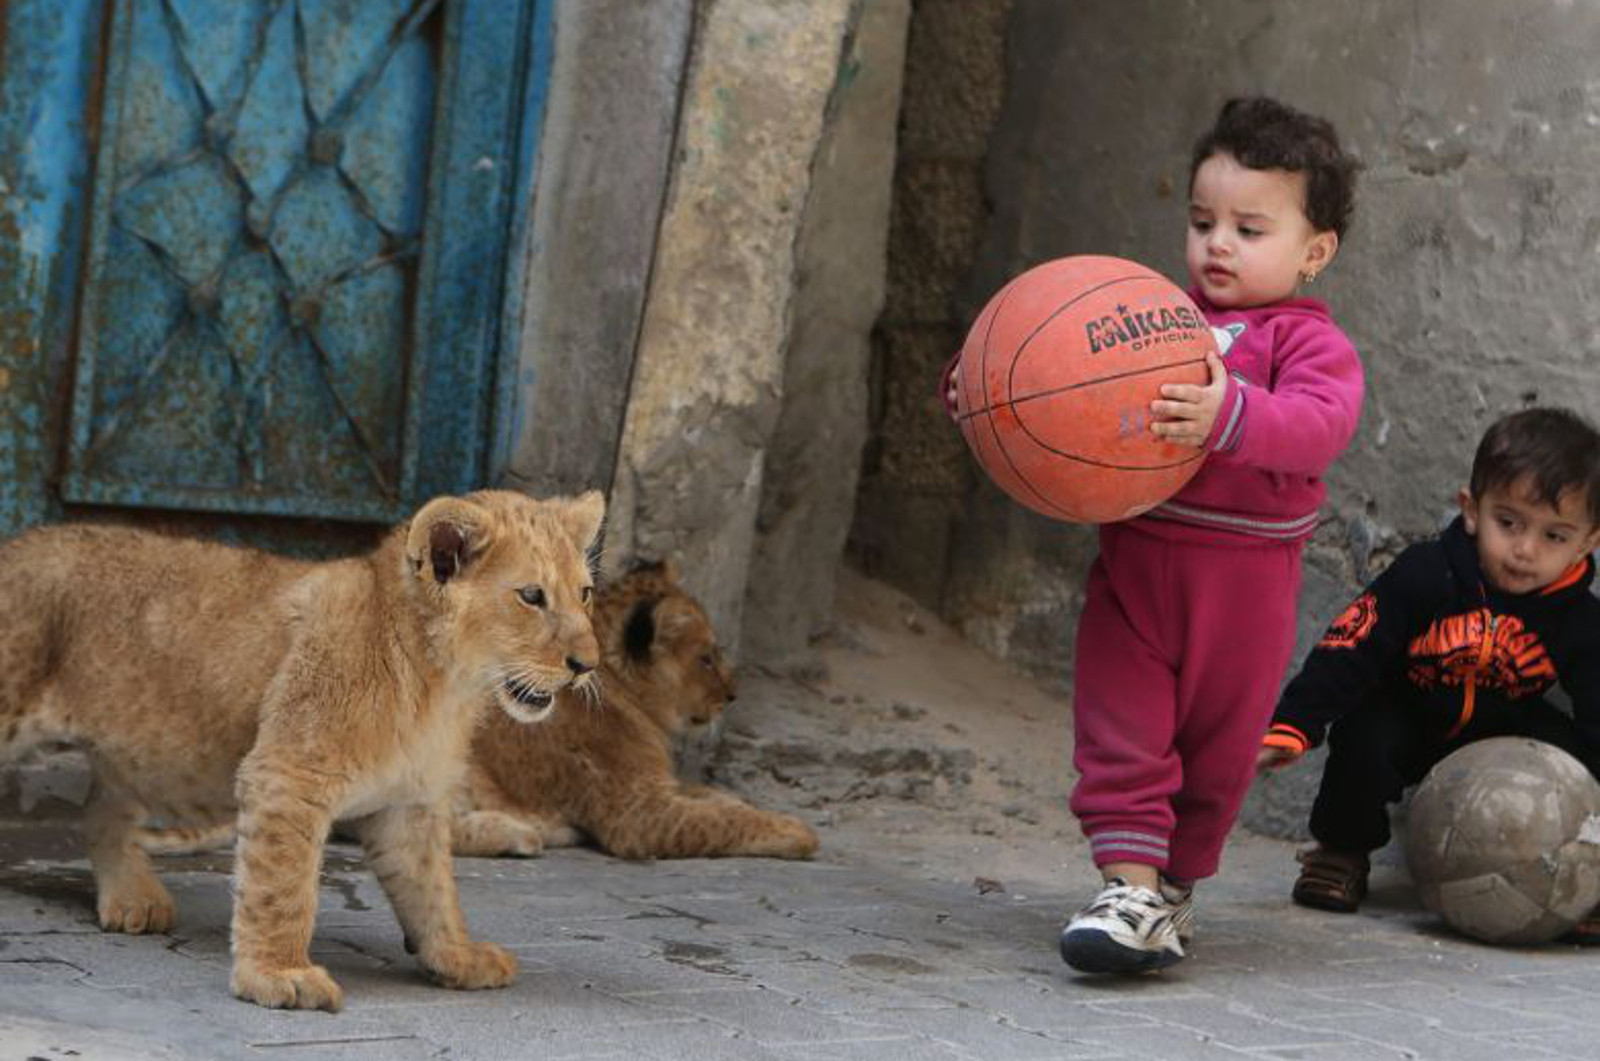 Gaza Lion Cubs Rescued From Life as Pets, But Our Work Isn't Over Yet